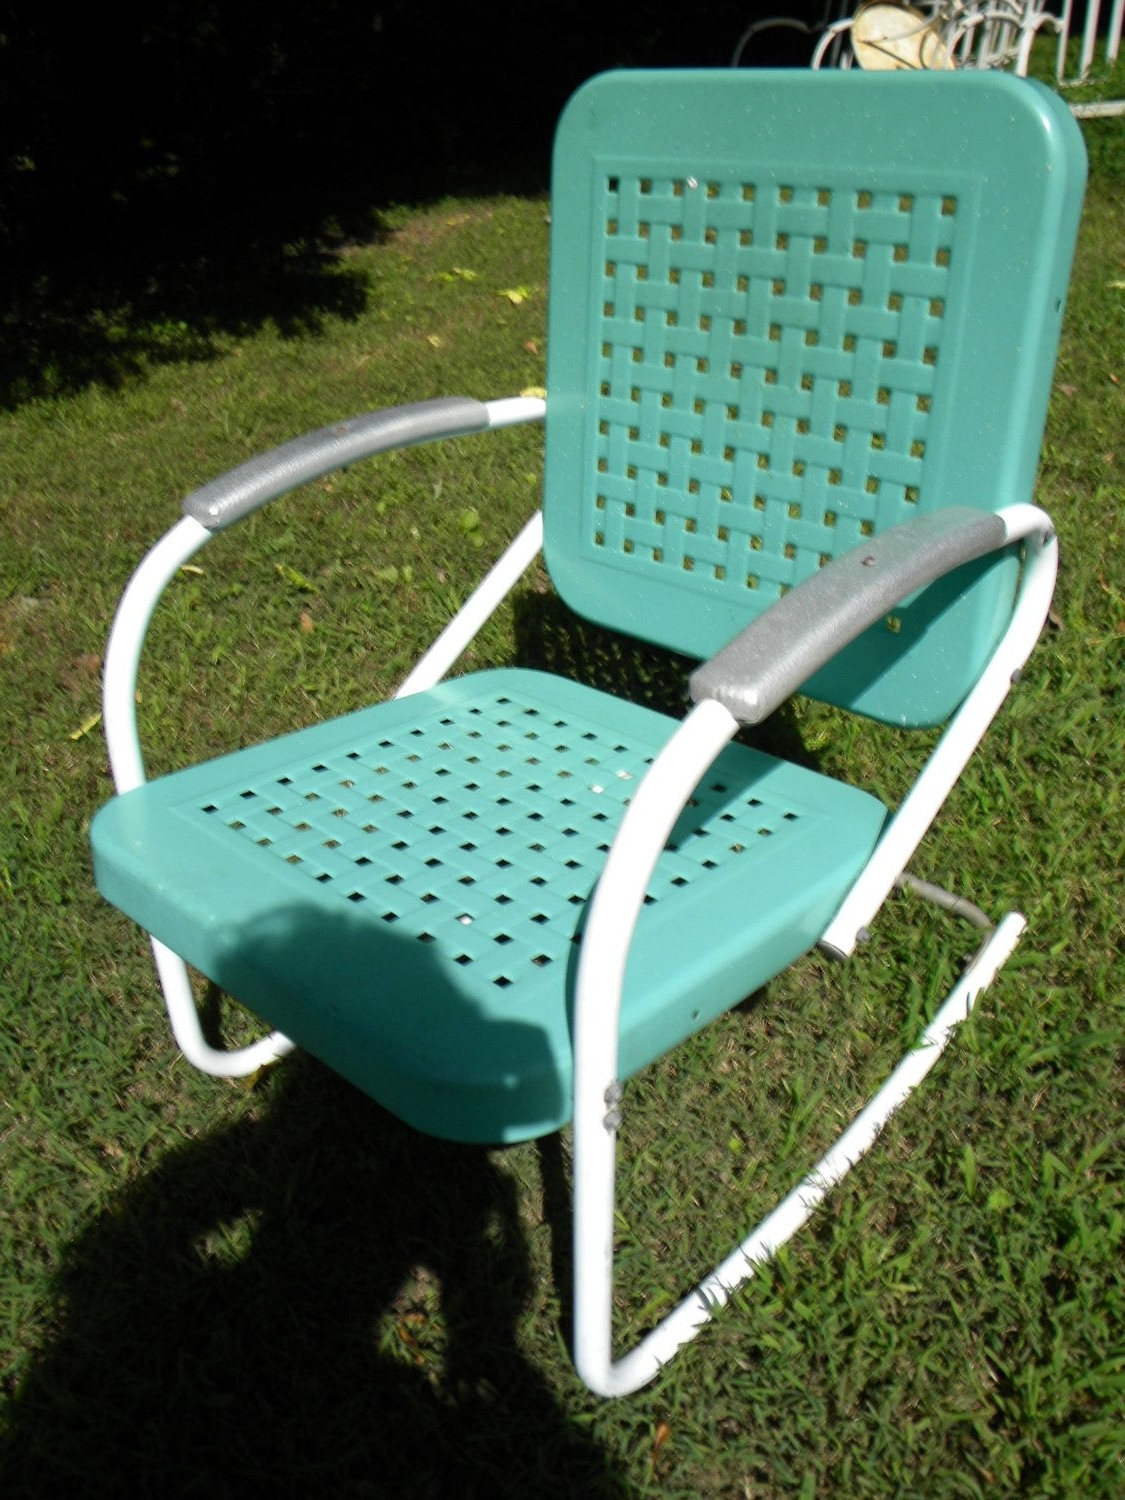 Widely Used Vtg 50S 60S Retro Outdoor Metal Lawn Patio Porch Rocking Chair Inside Vintage Outdoor Rocking Chairs (View 15 of 15)